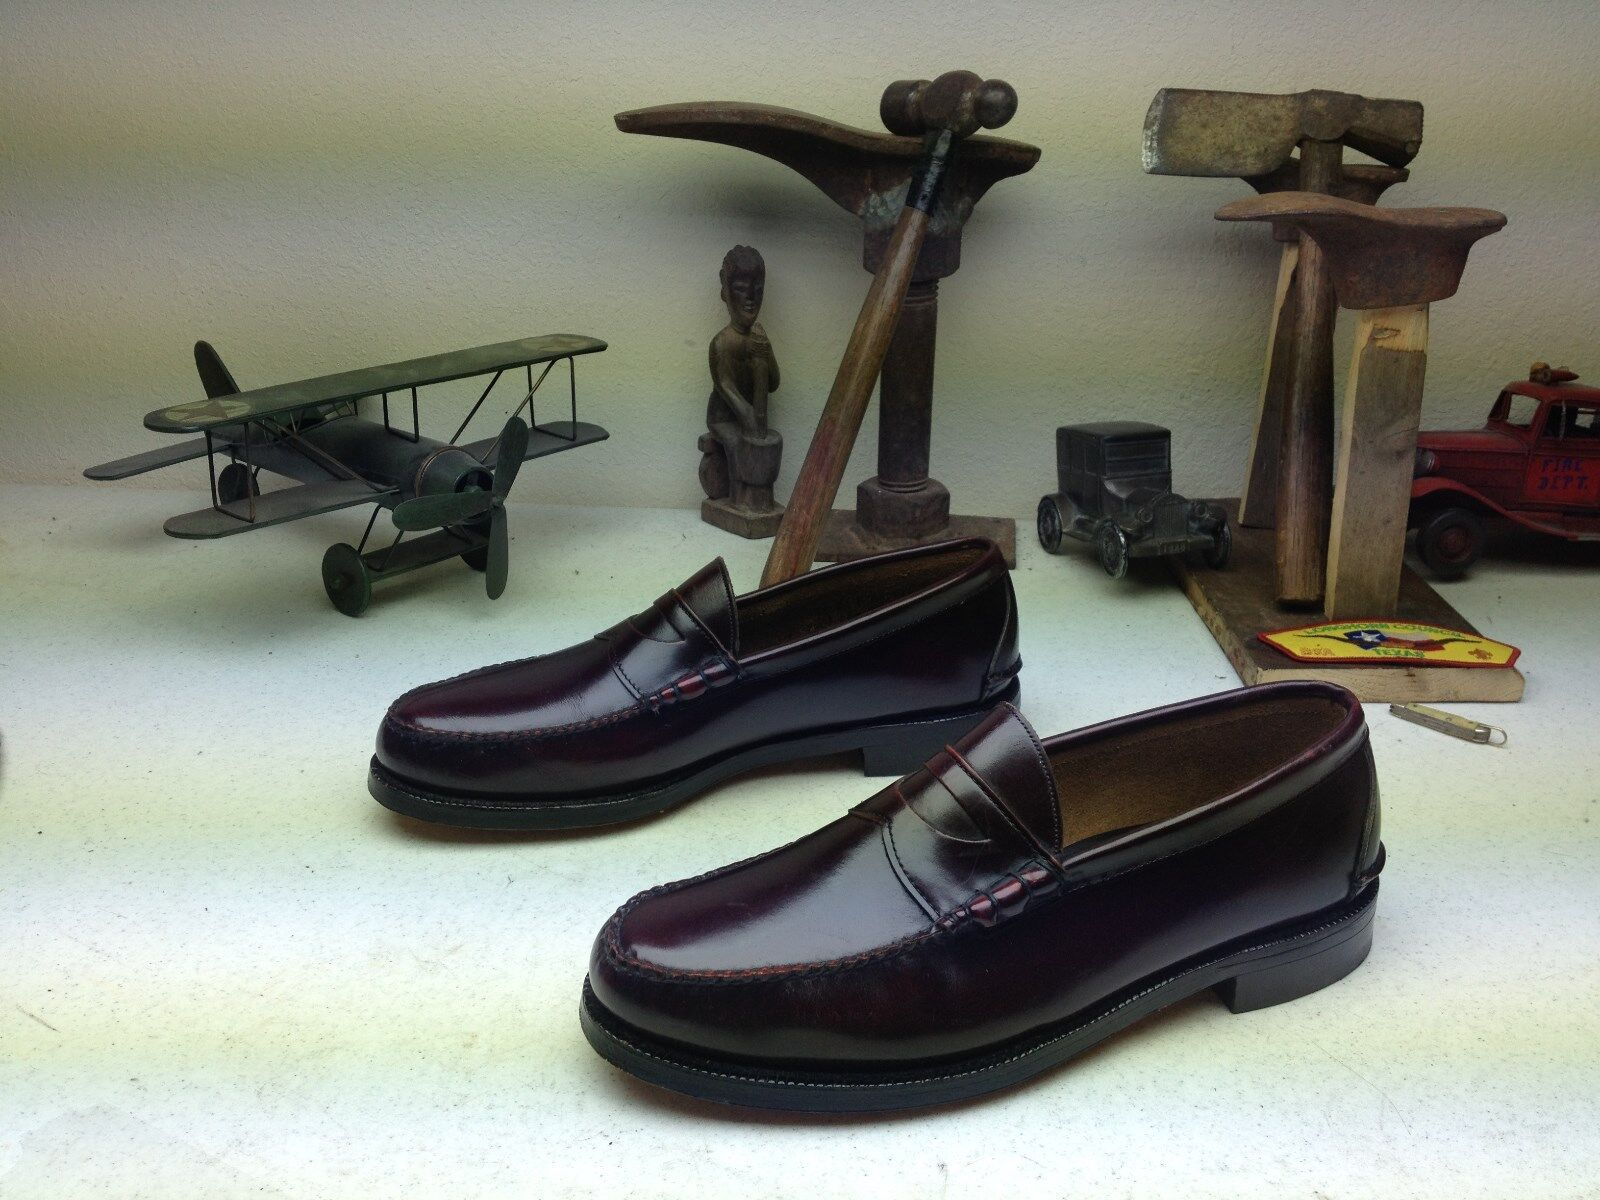 negozio all'ingrosso MADE IN USA JOHNSTON MURPHY BURGUNDY LEATHER LEATHER LEATHER ARISTOCRAT SLIP ON LOAFERS 11.5 M  shopping online di moda